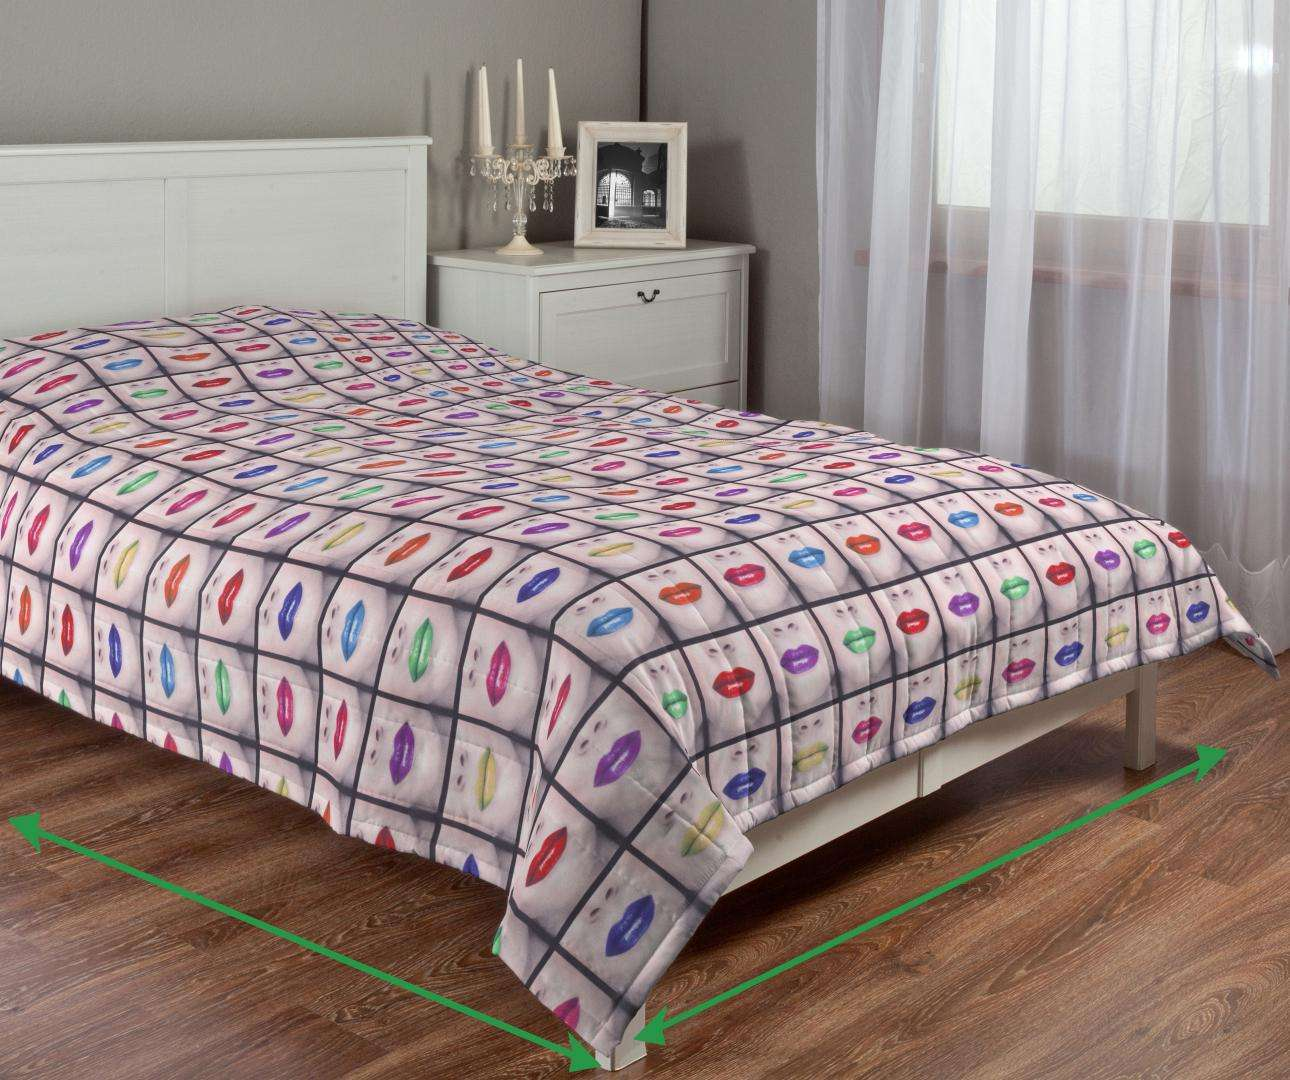 Quilted throw (vertical quilt pattern) in collection Freestyle, fabric: 150-05